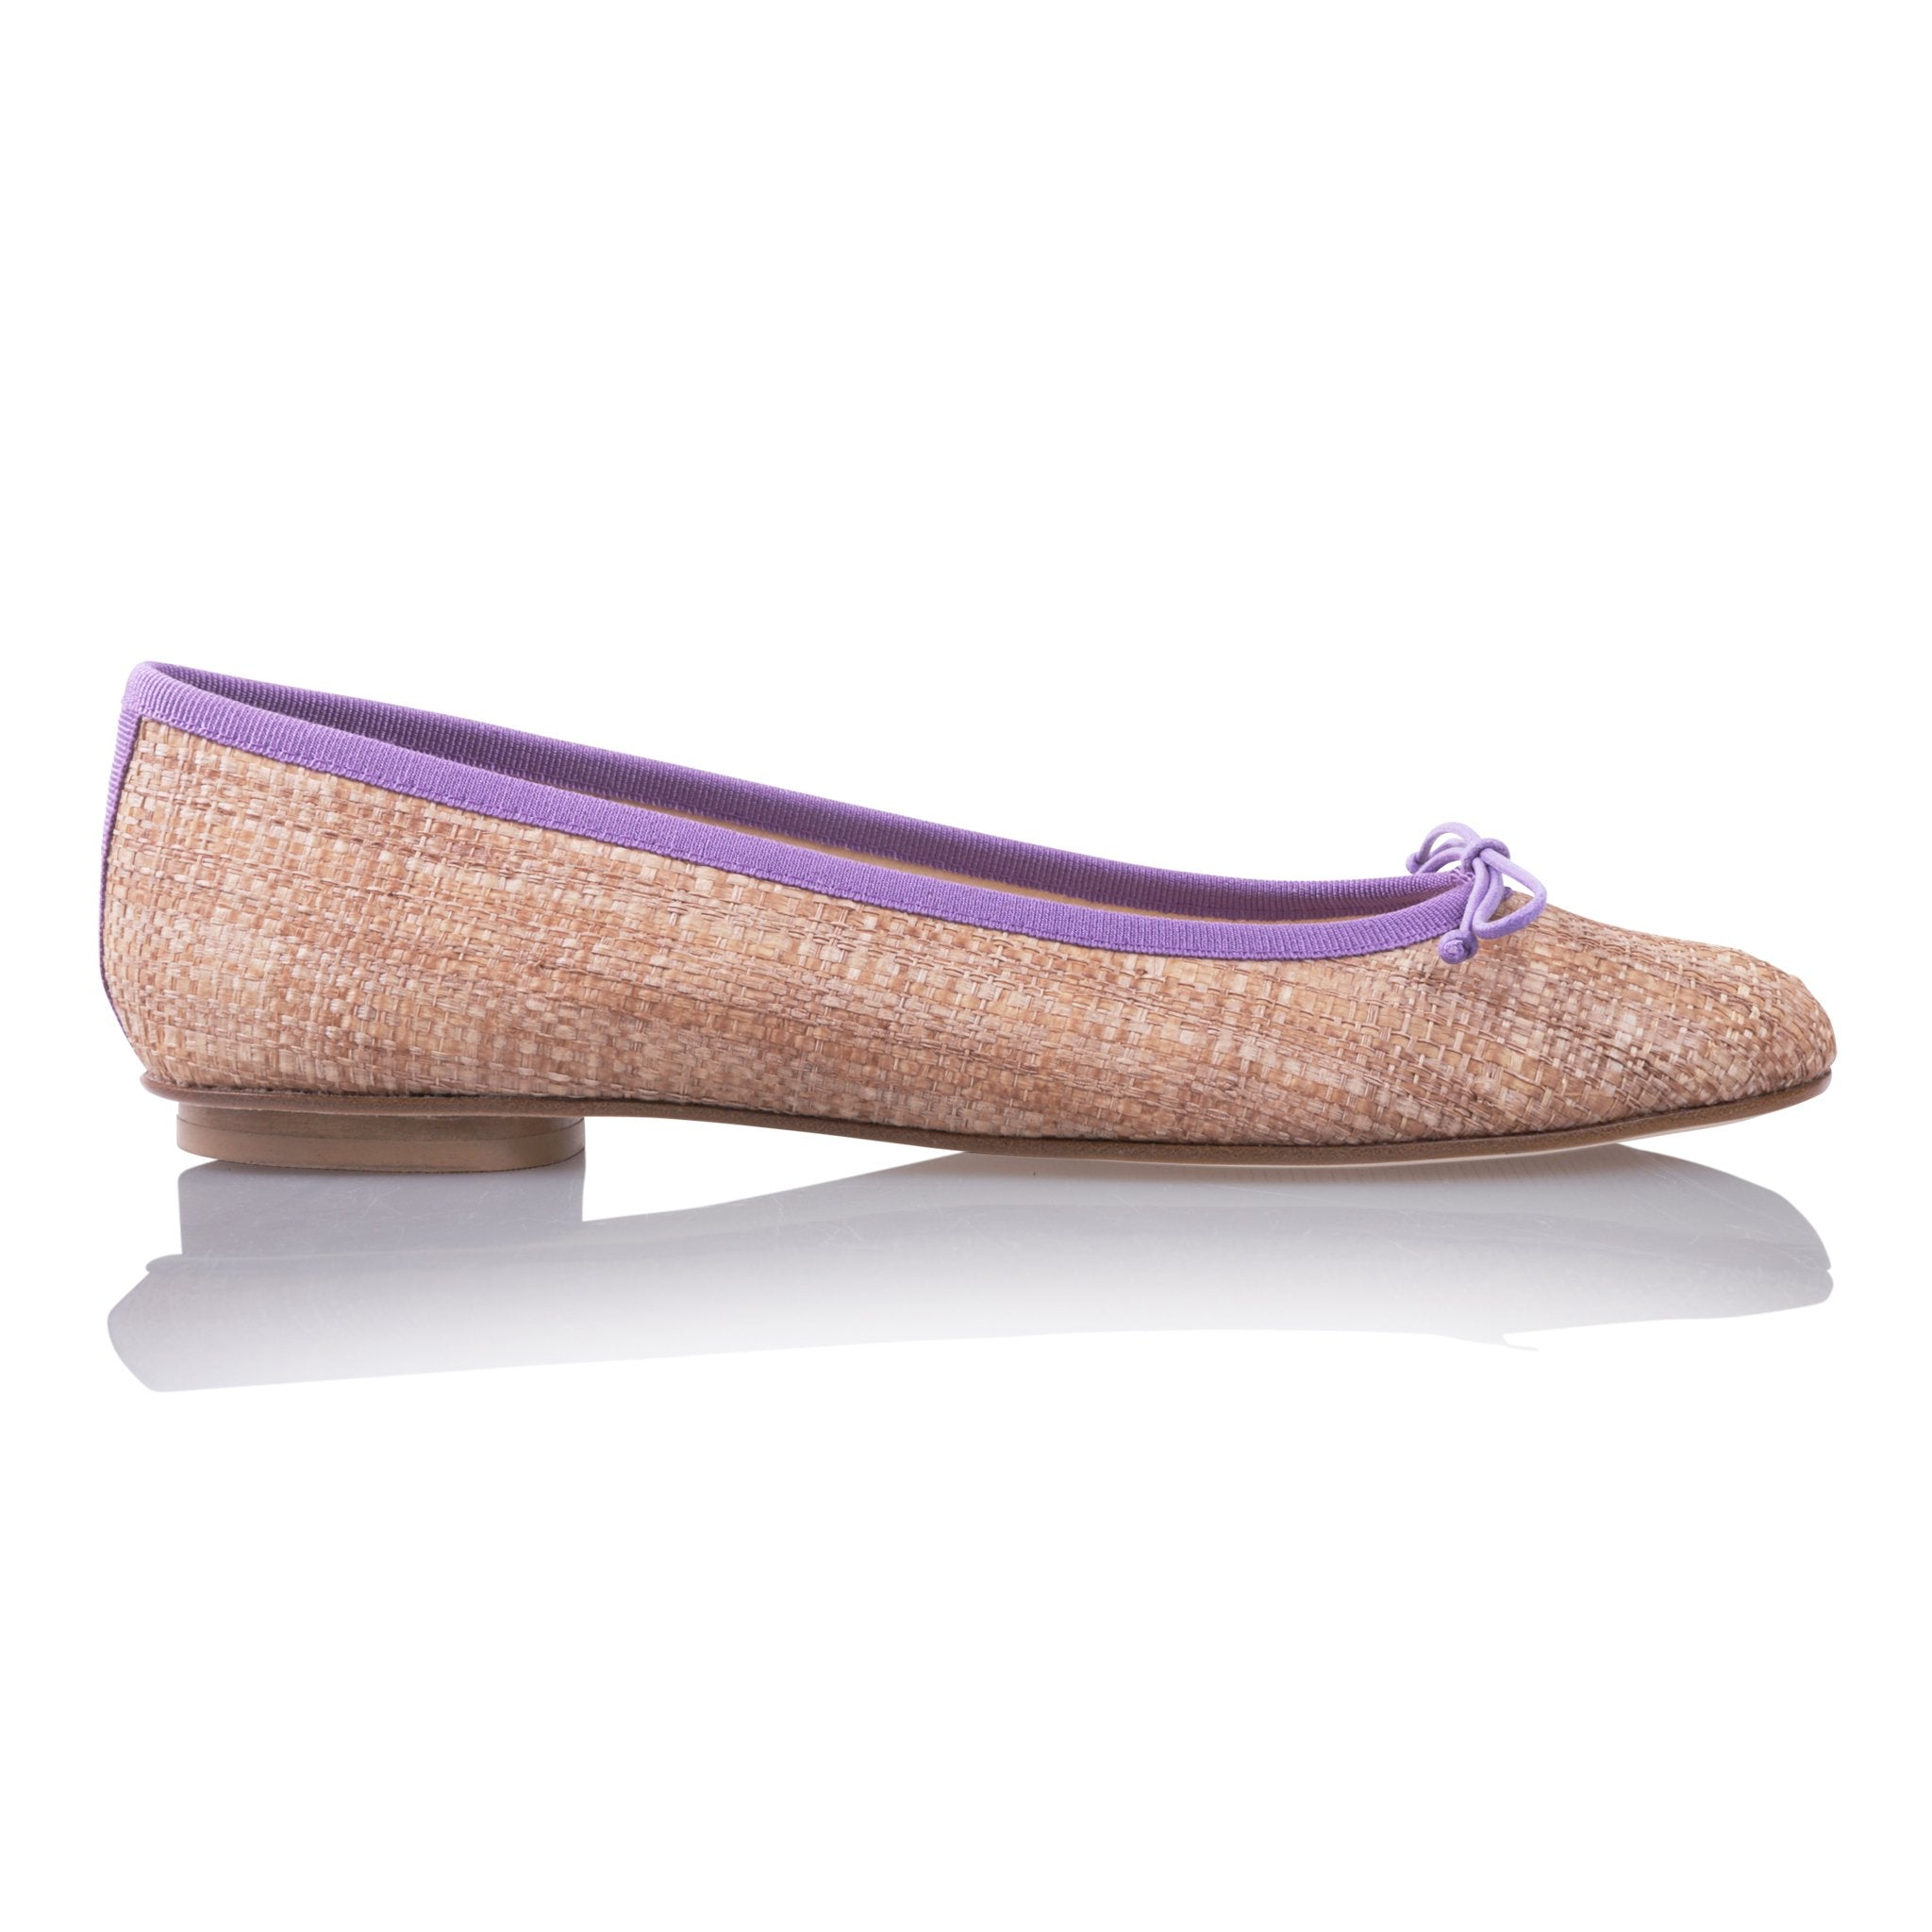 ROMA - Raffia Natural + Drawstring Lavender Bow, VIAJIYU - Women's Hand Made Sustainable Luxury Shoes. Made in Italy. Made to Order.